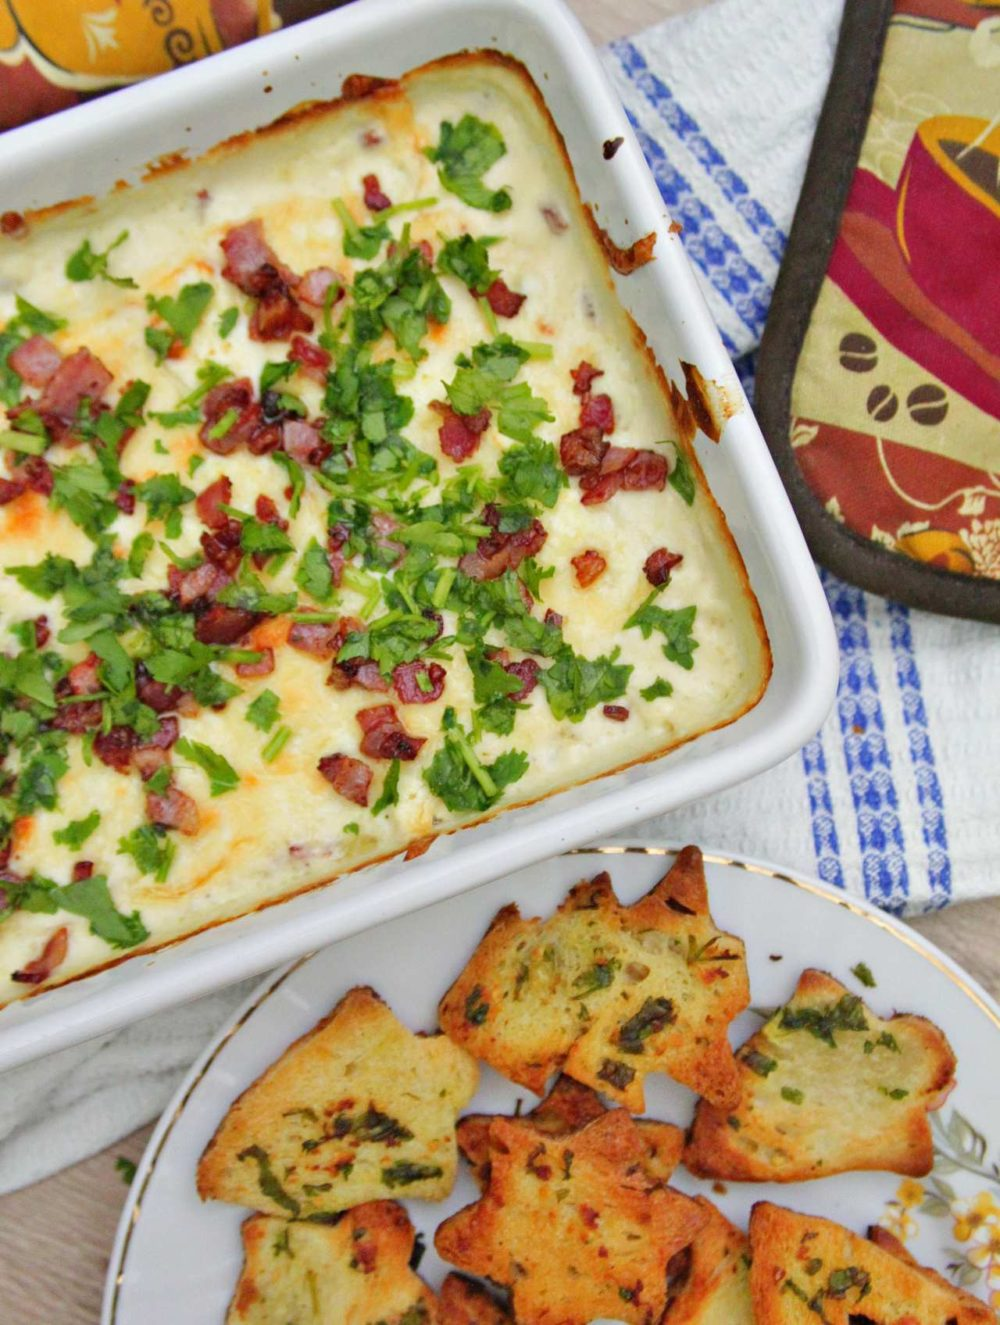 Bread chips next to a casserole of hot cheese dip with bacon and parsley